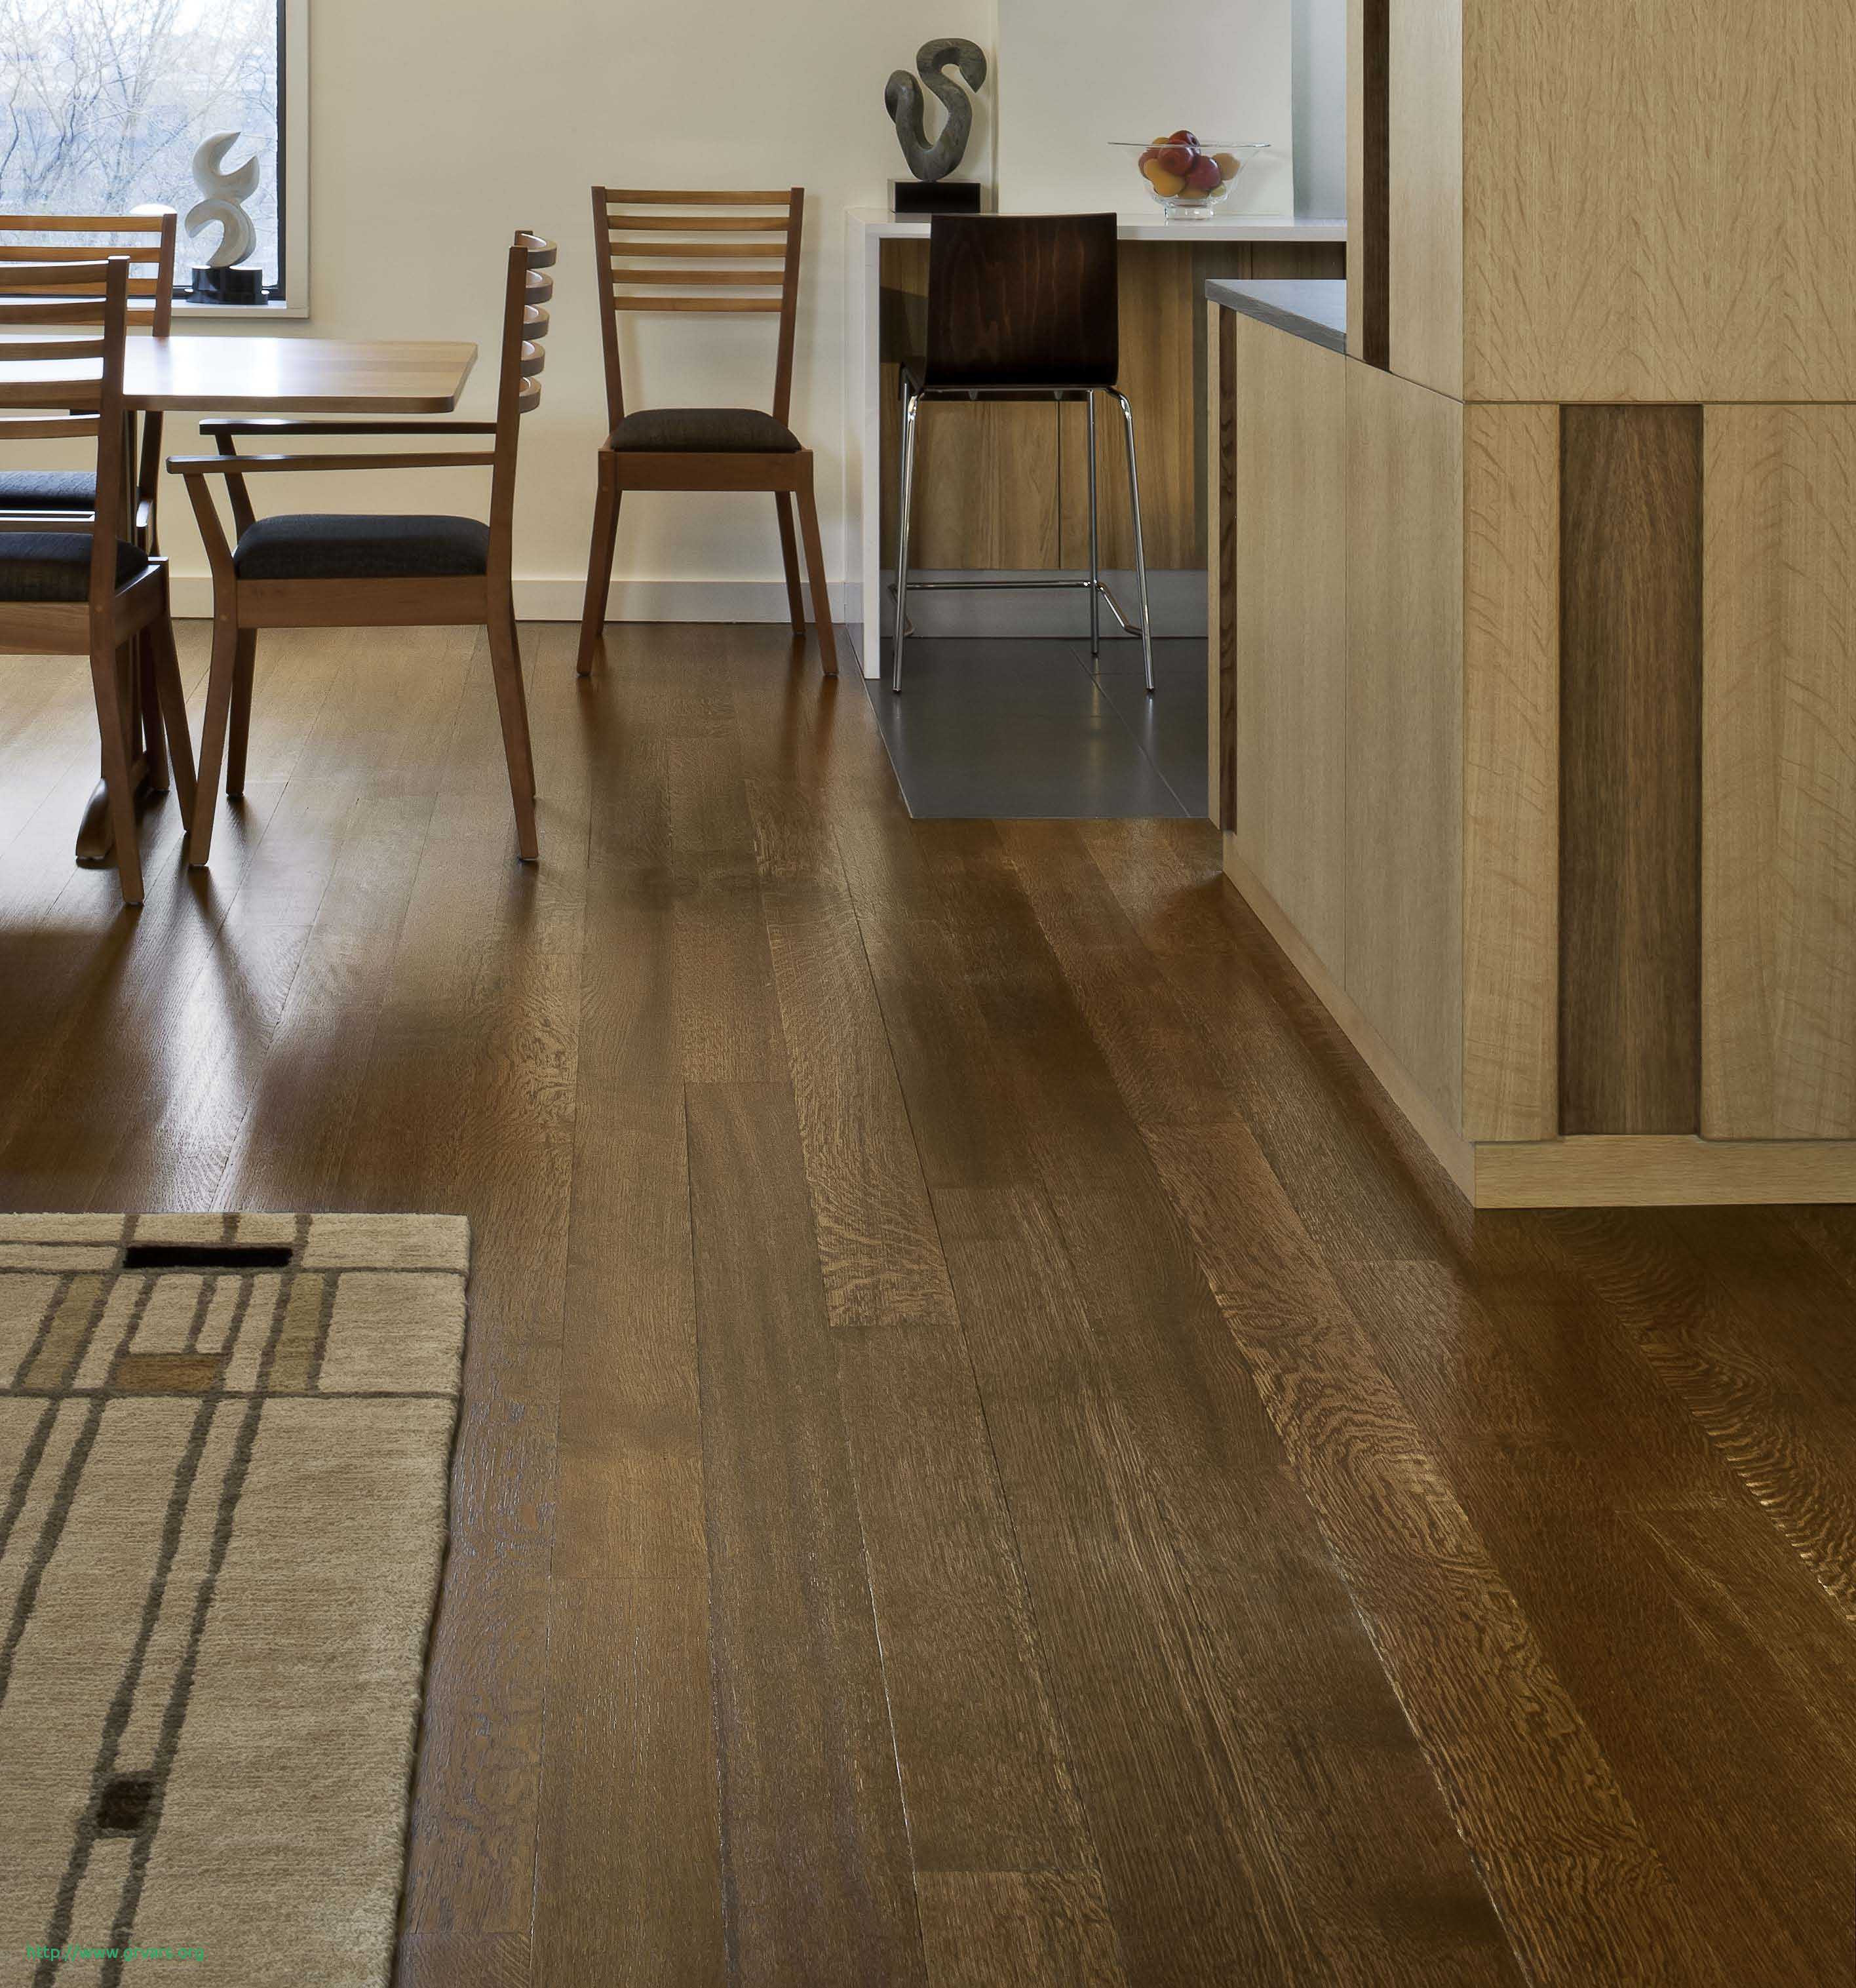 installing unfinished hardwood floors yourself of 21 inspirant best prices for laminate wood flooring ideas blog pertaining to best prices for laminate wood flooring beau engaging discount hardwood flooring 5 where to buy inspirational